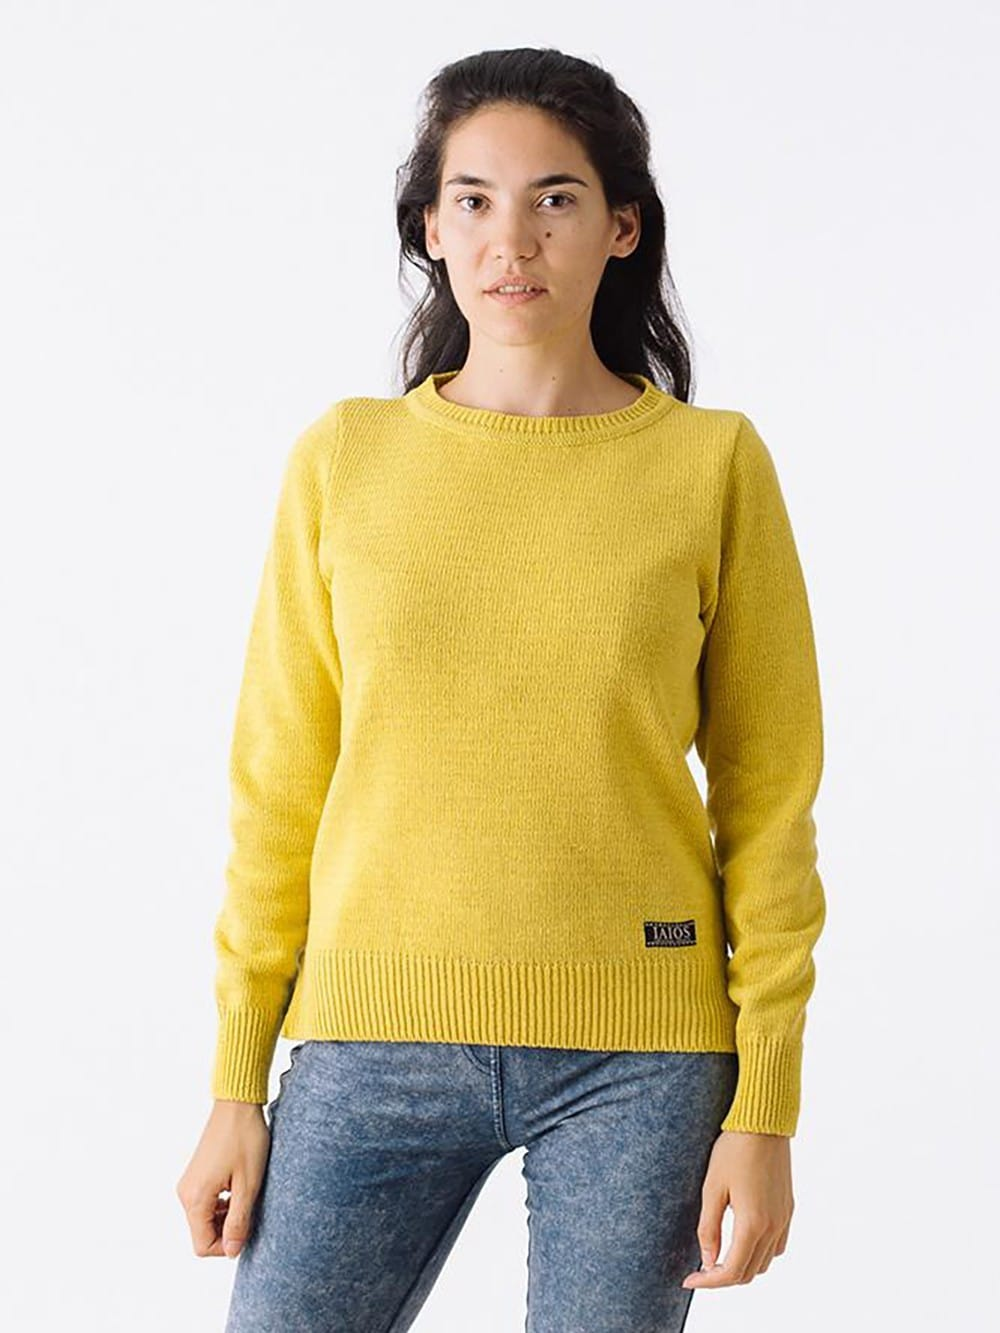 Sweater made with recycled materials-N.Da Silveira